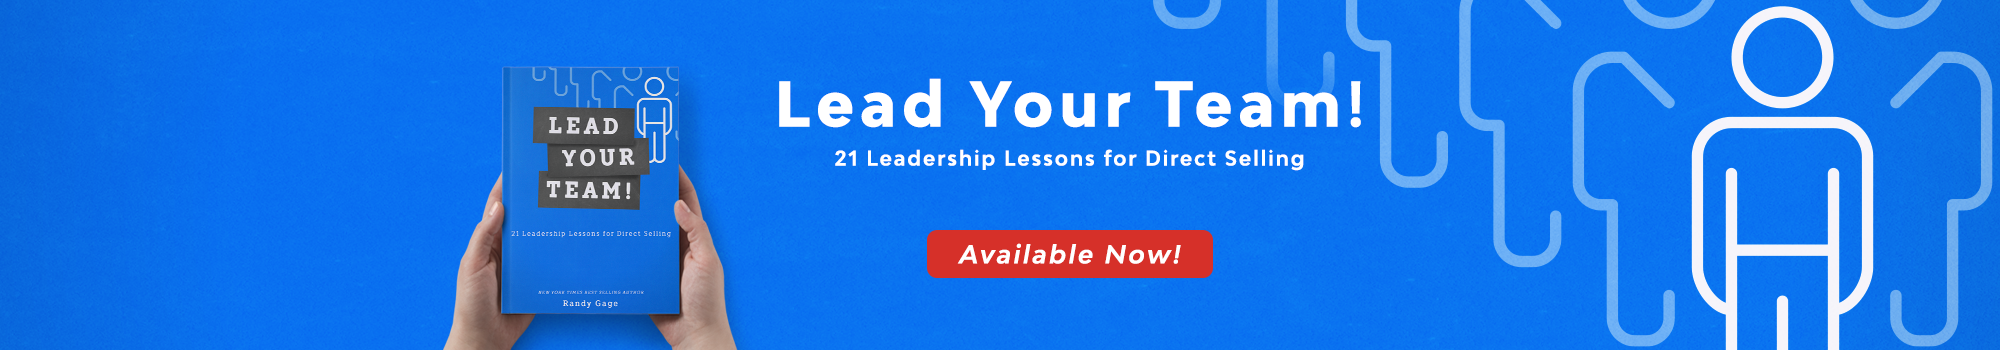 Lead Your Team! New Book by Randy Gage